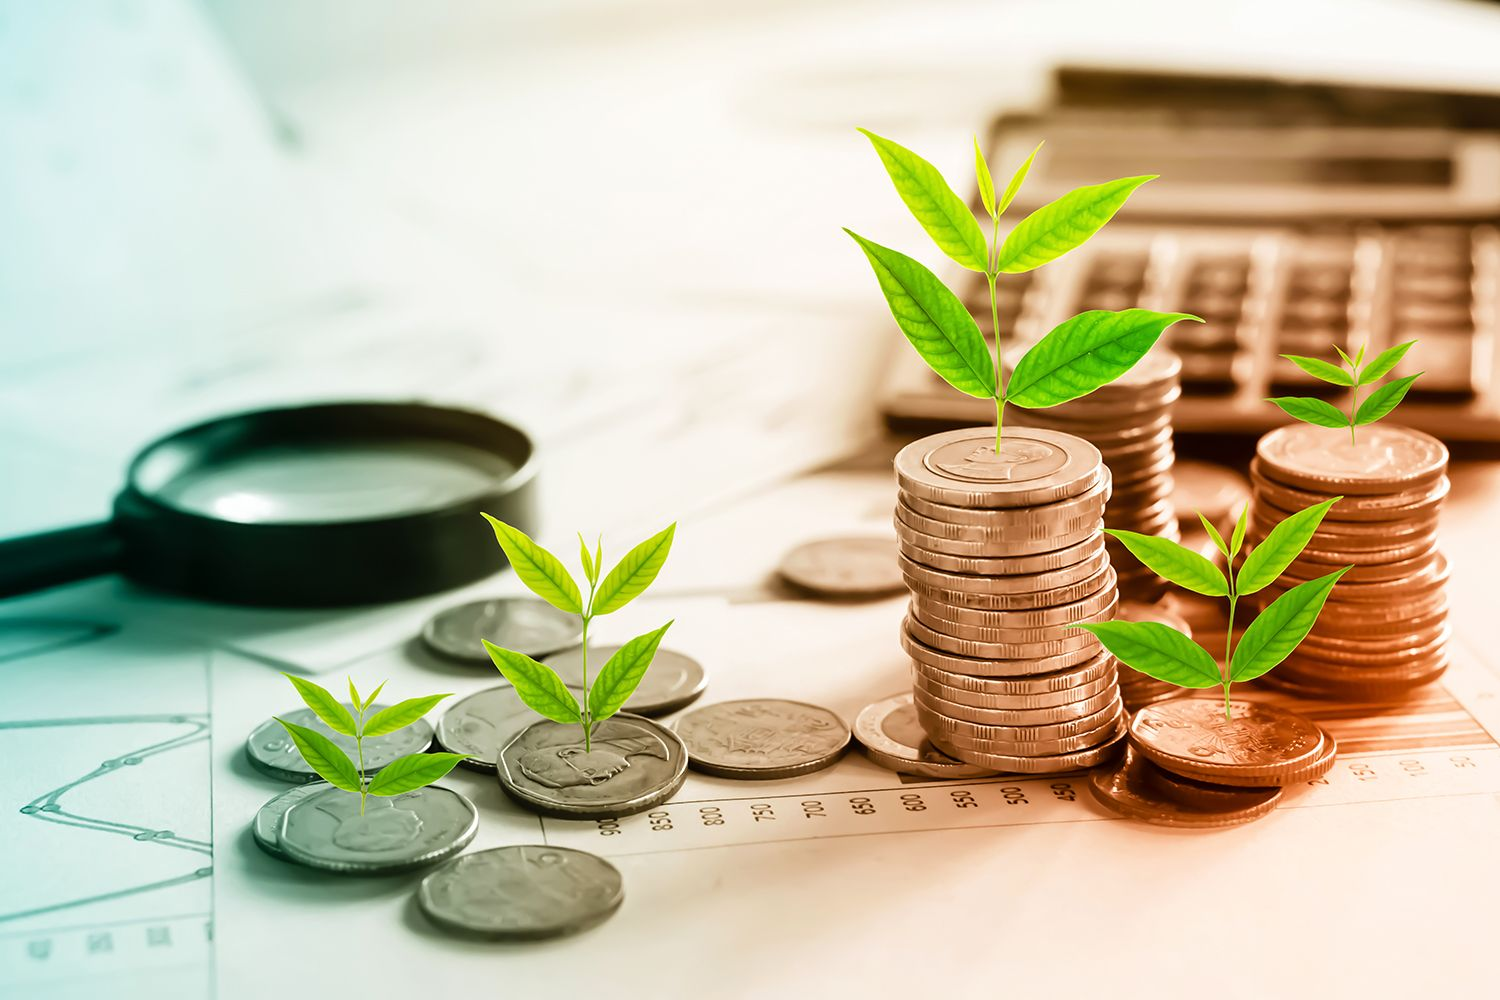 Green and Sustainable Banking - The HKMA's Common Assessment Framework